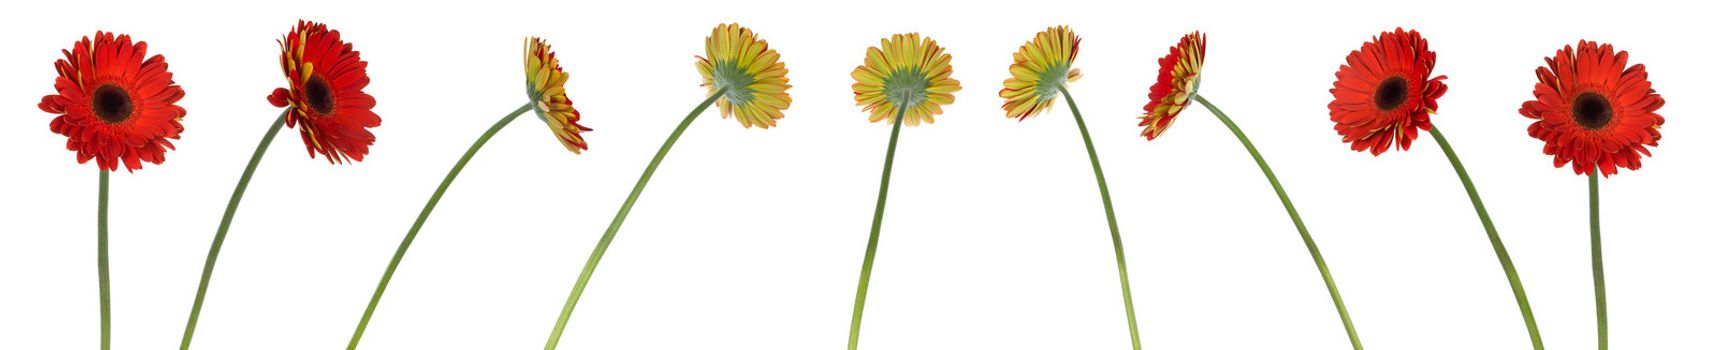 nine red gerbera flowers in different positions, isolated on white